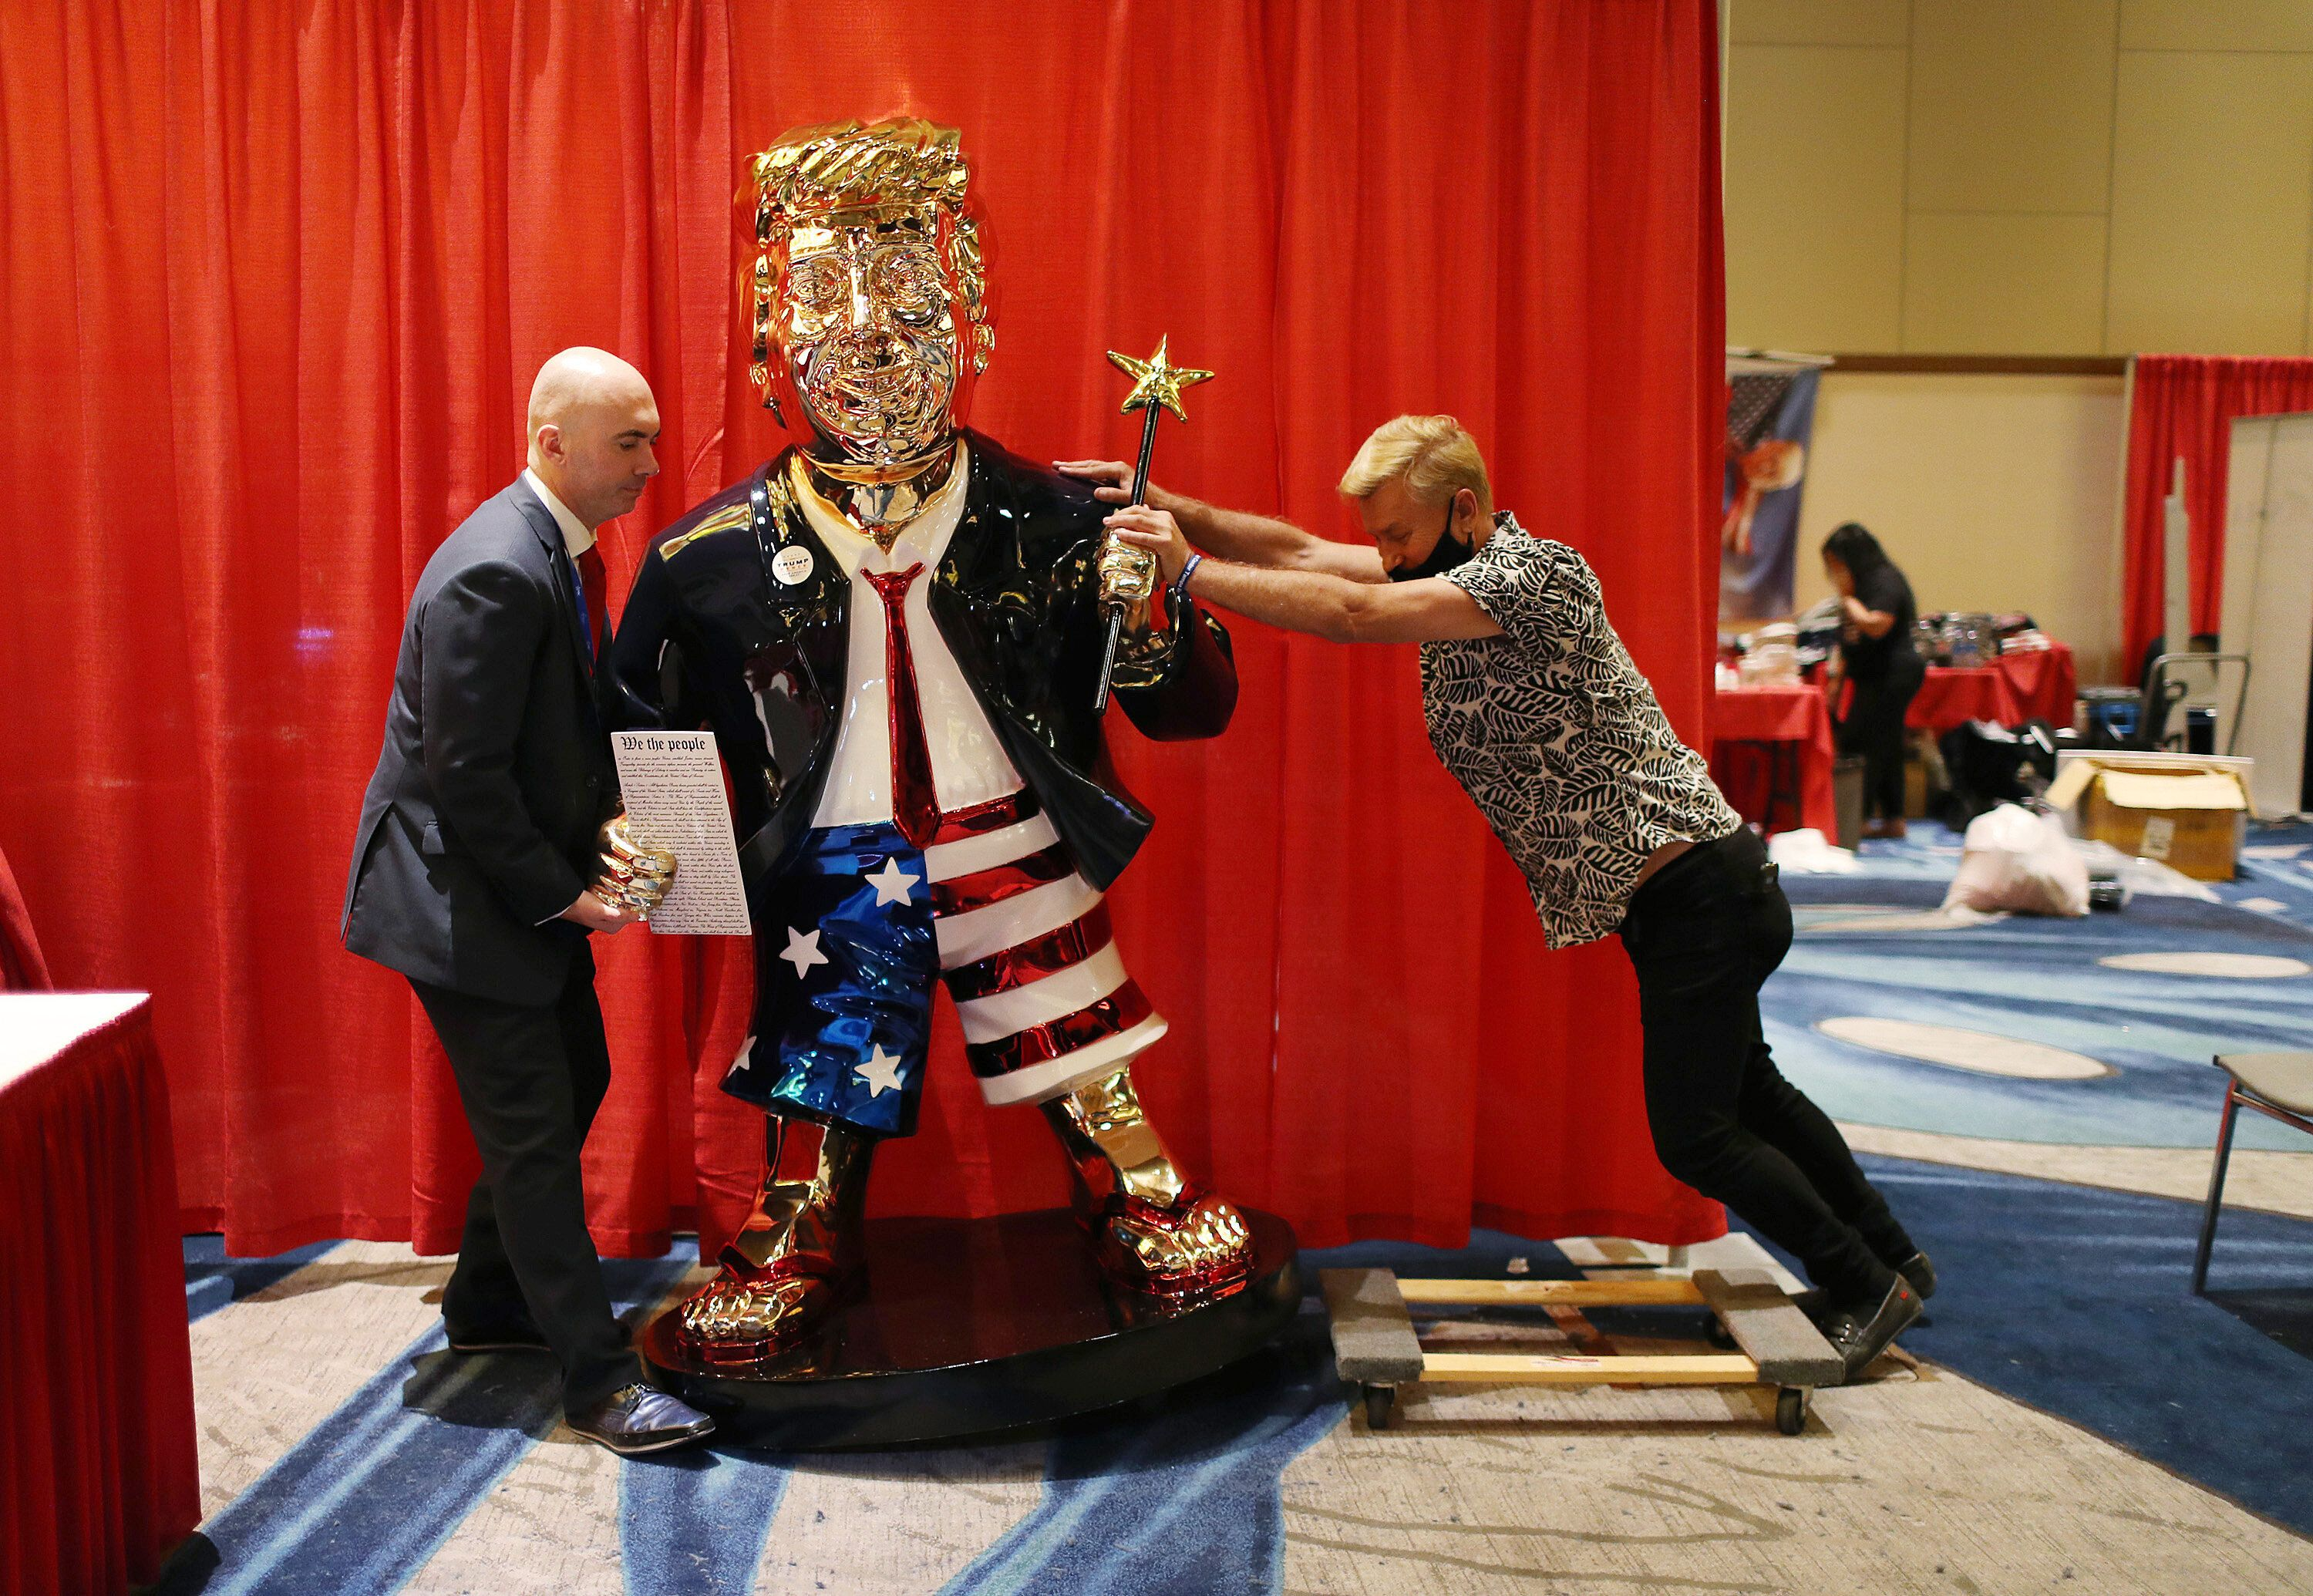 Republicans roll out a golden statue of Donald Trump ahead of his speech to the Conservative Political Action Convention, one